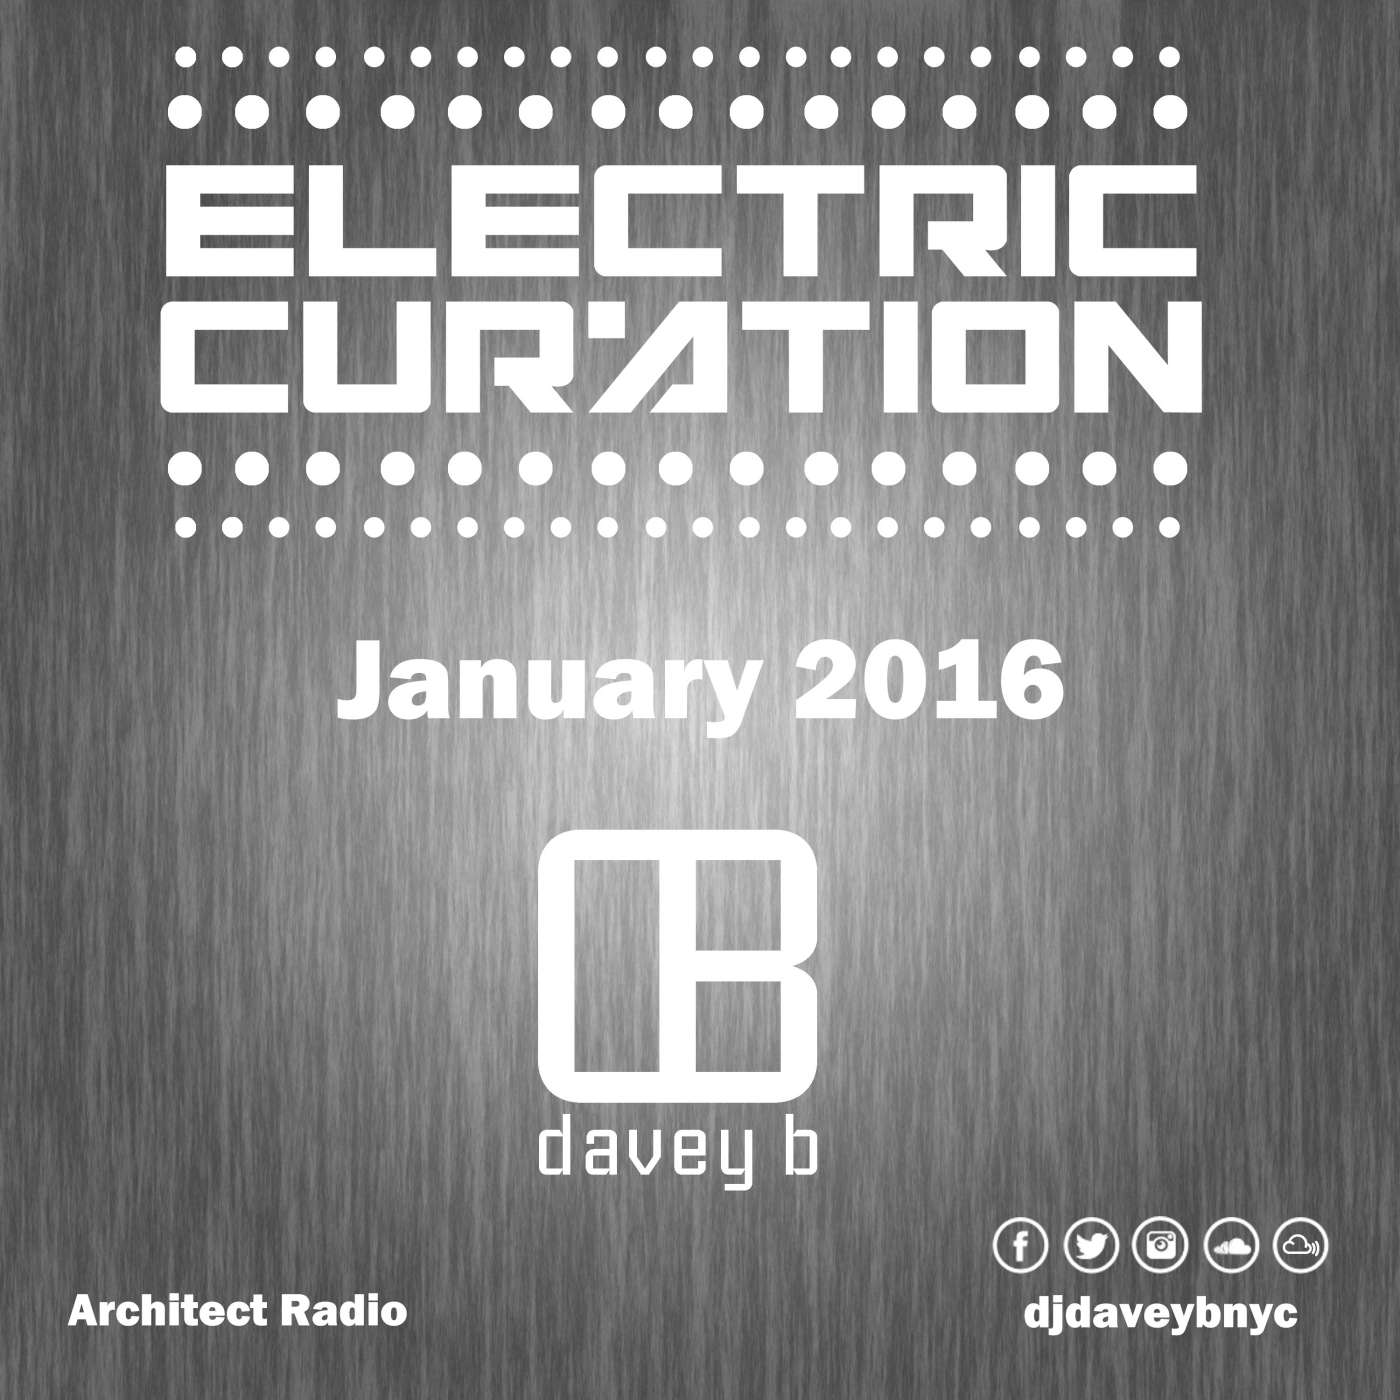 DJ Davey B Electric Curation January 2016